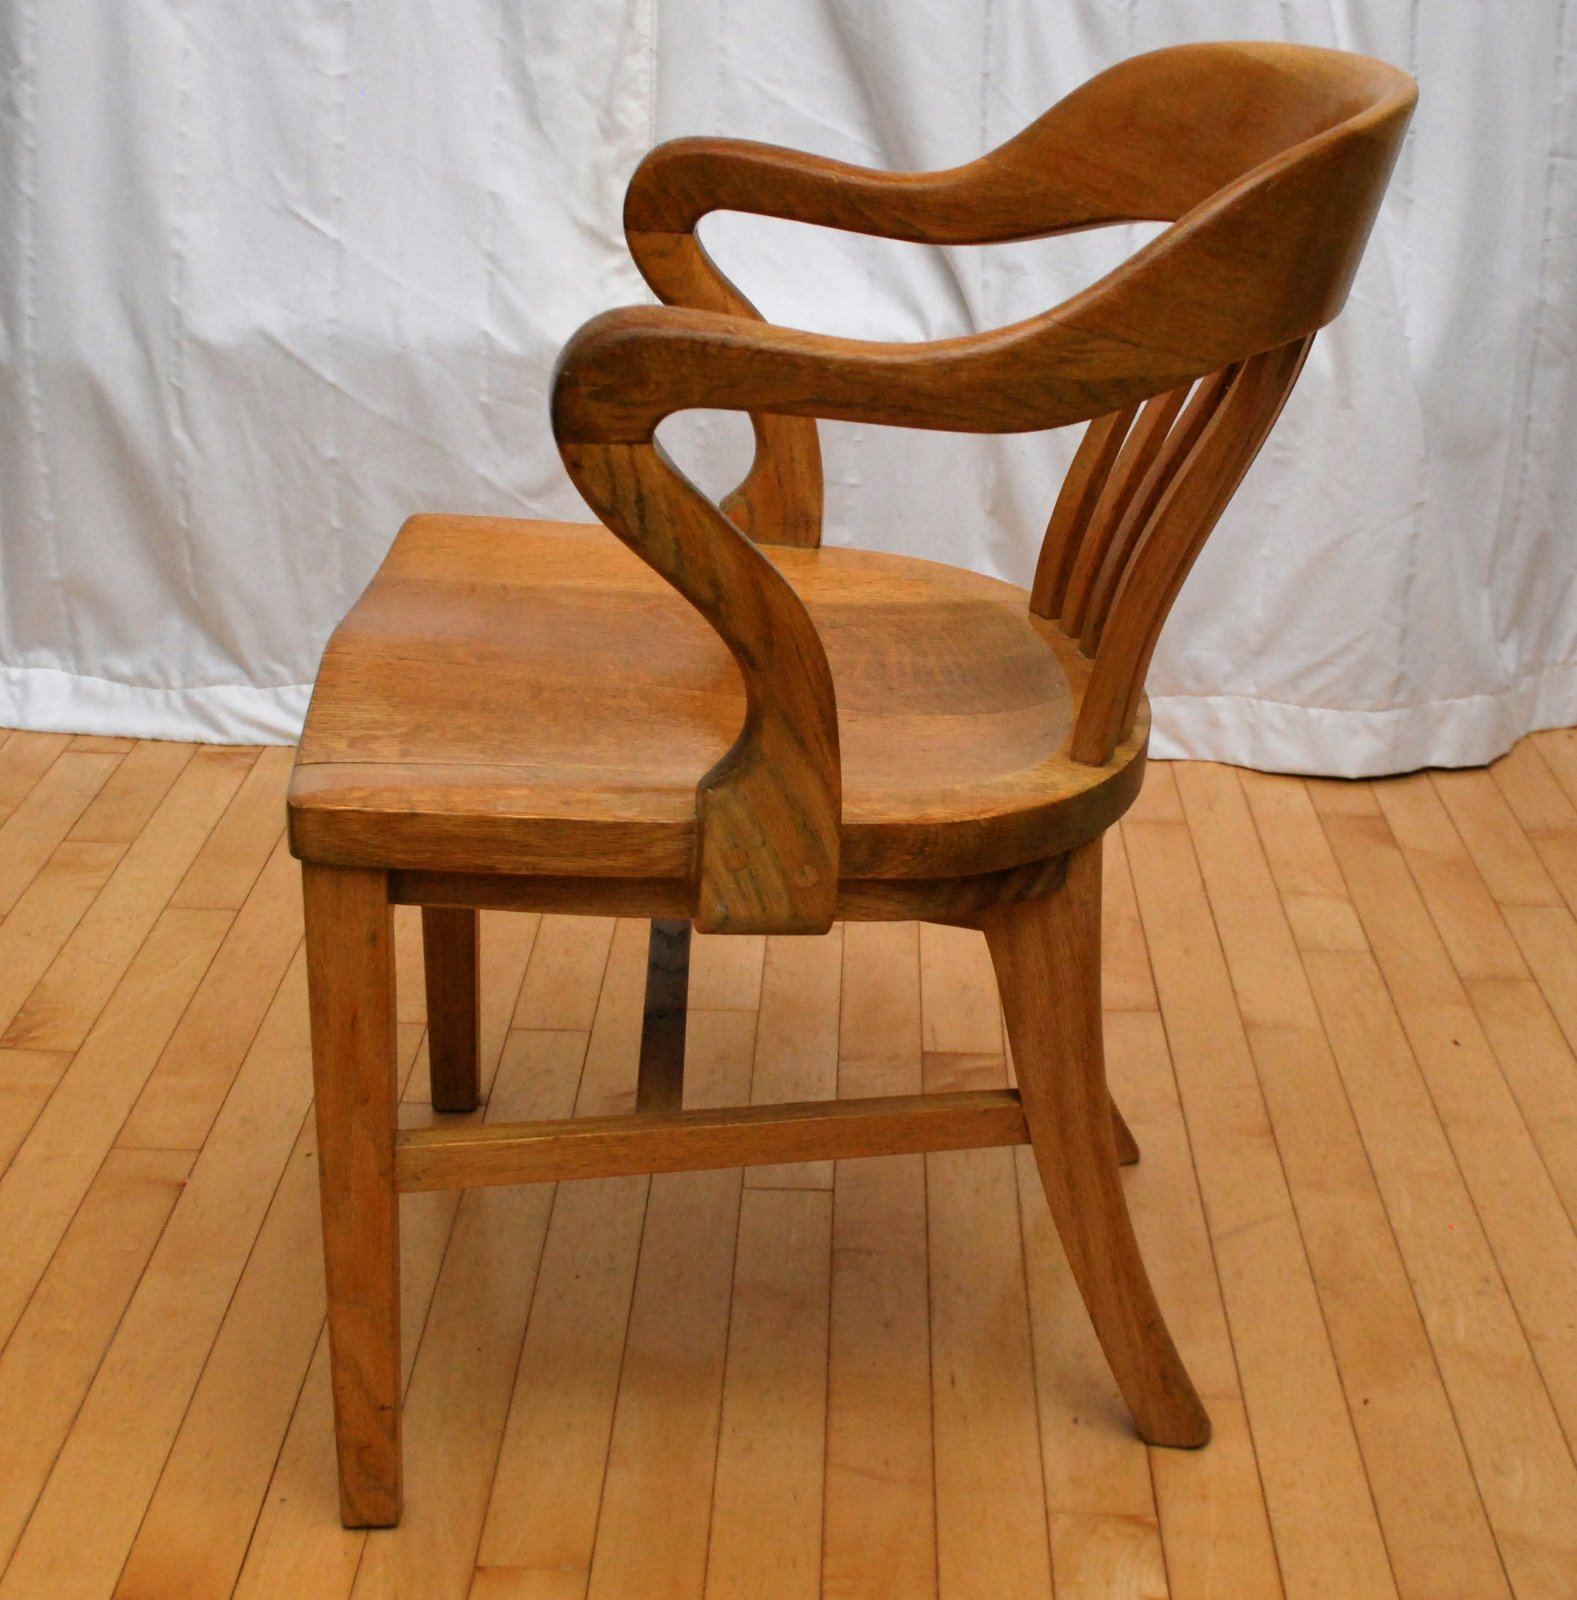 Ontario Table And Chair Company Kitchener